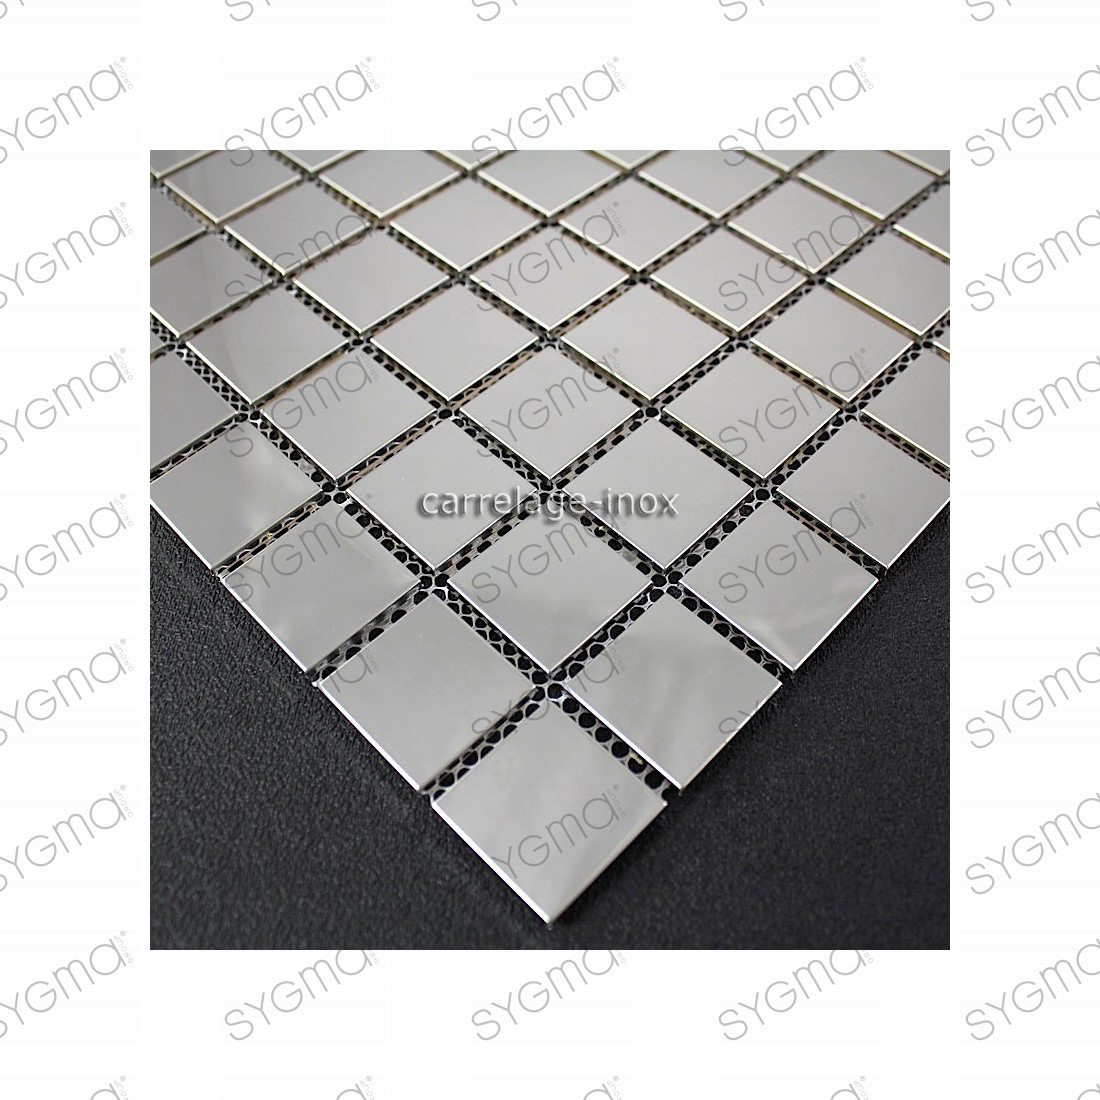 Carrelage mosaique inox miroir cr dence cuisine regular 30 for Carrelage inox fr